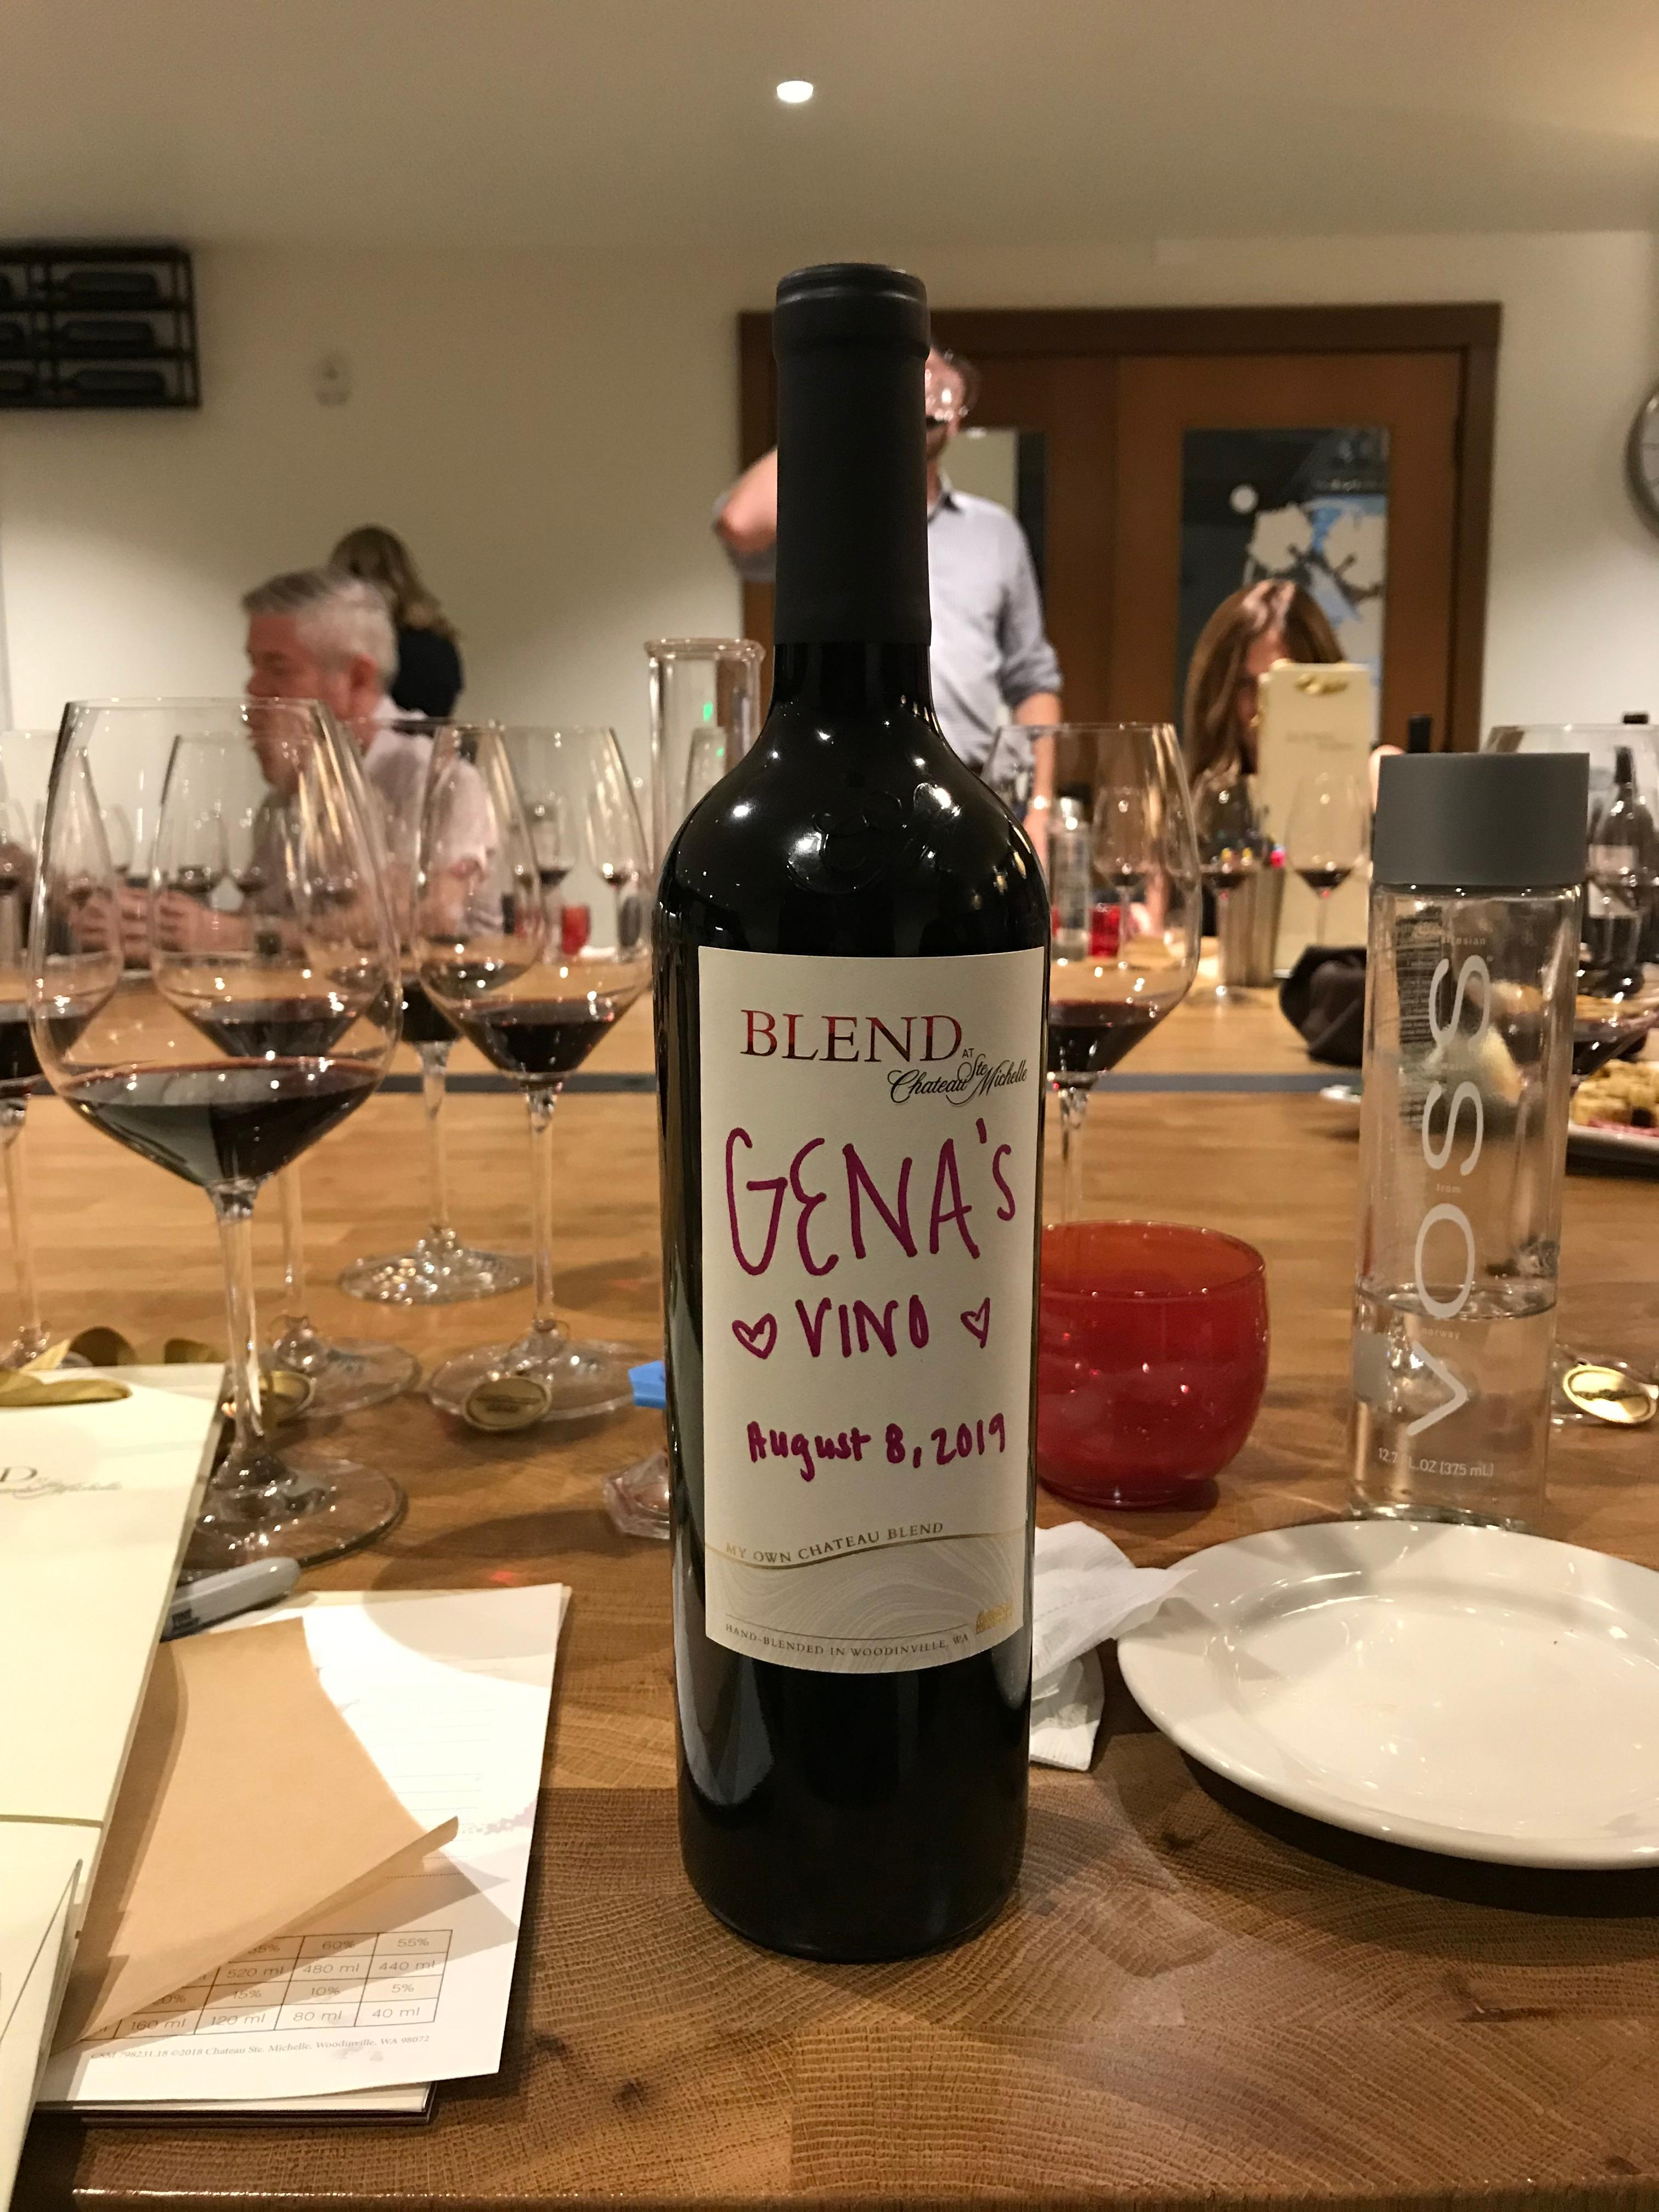 Gena's Vino, a truly original and very unique name... (Image: Gena Wynkoop / Seattle Refined).